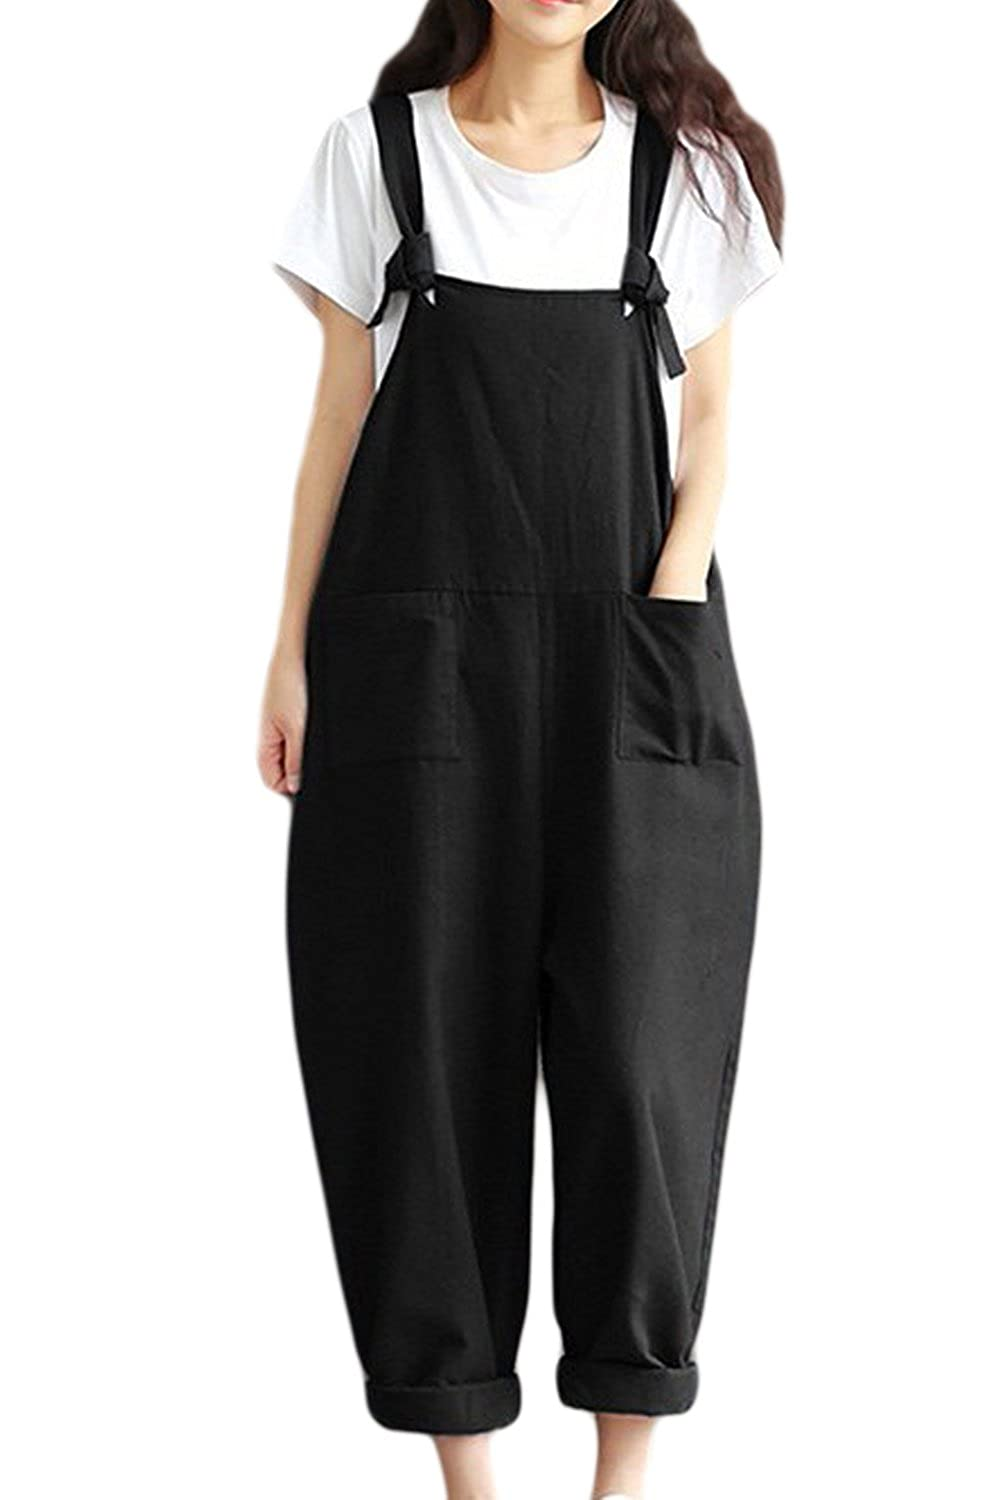 e52cadc579b0 Vepodrau Women Cotton Linen Overalls Dungarees Vintage Baggy Loose Long Jumpsuits  Rompers with Pockets  Amazon.co.uk  Clothing